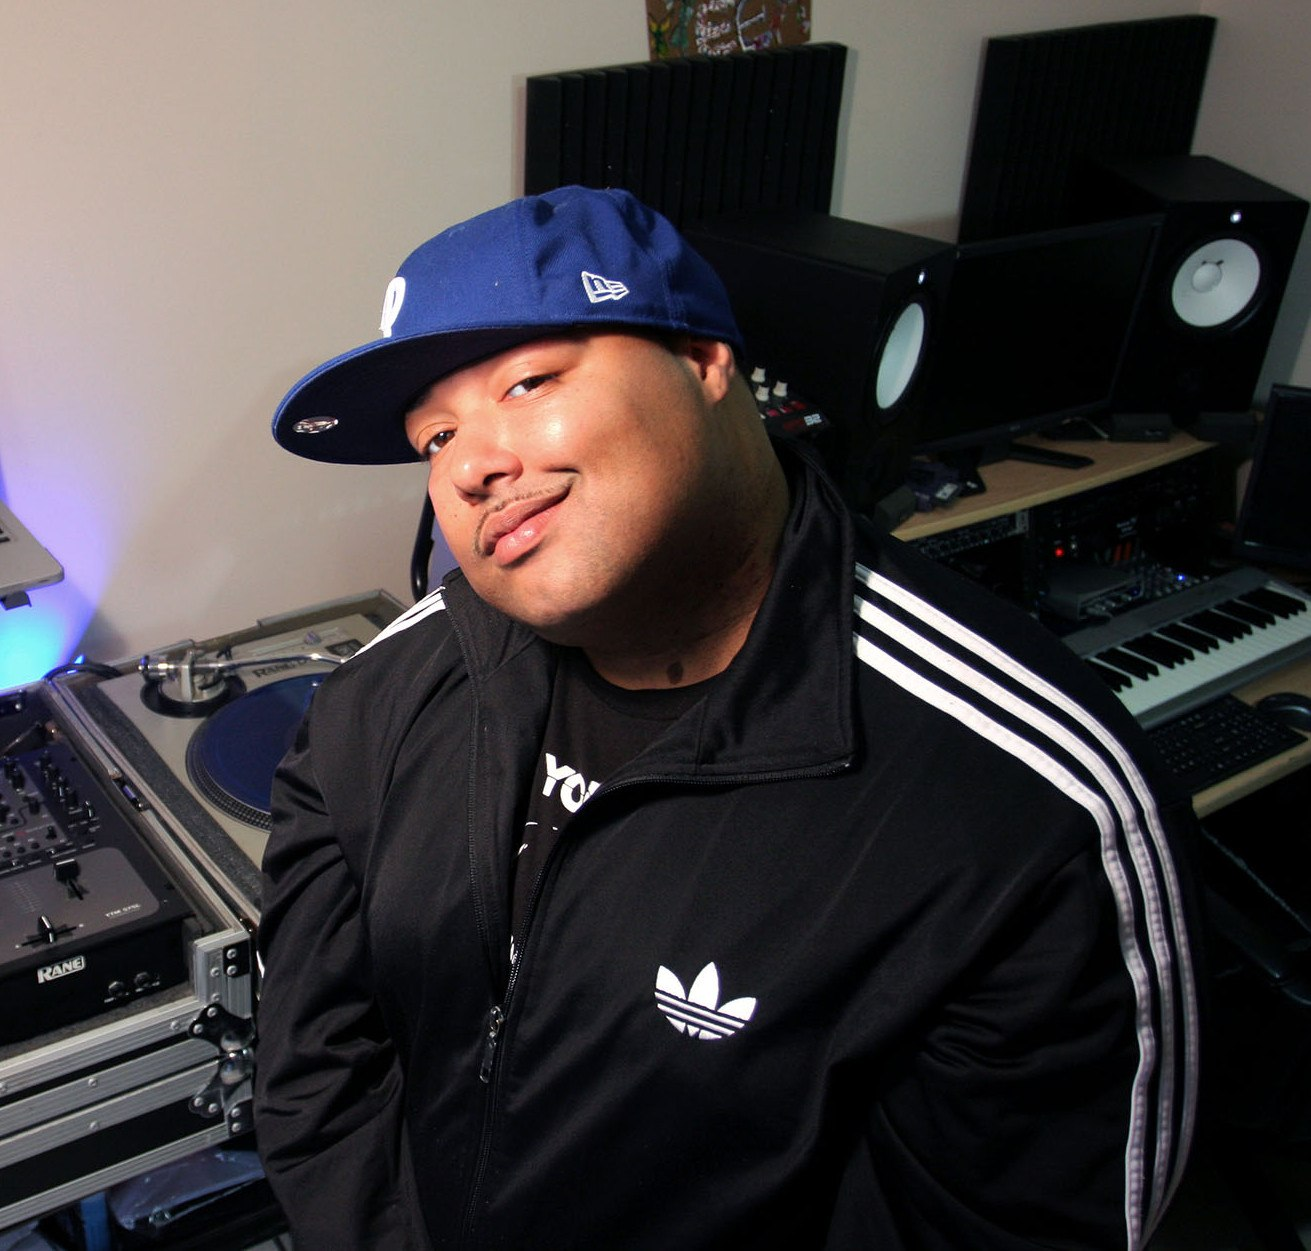 dj_dramadik_adidas_laptop_studio_phillies_hat_blue